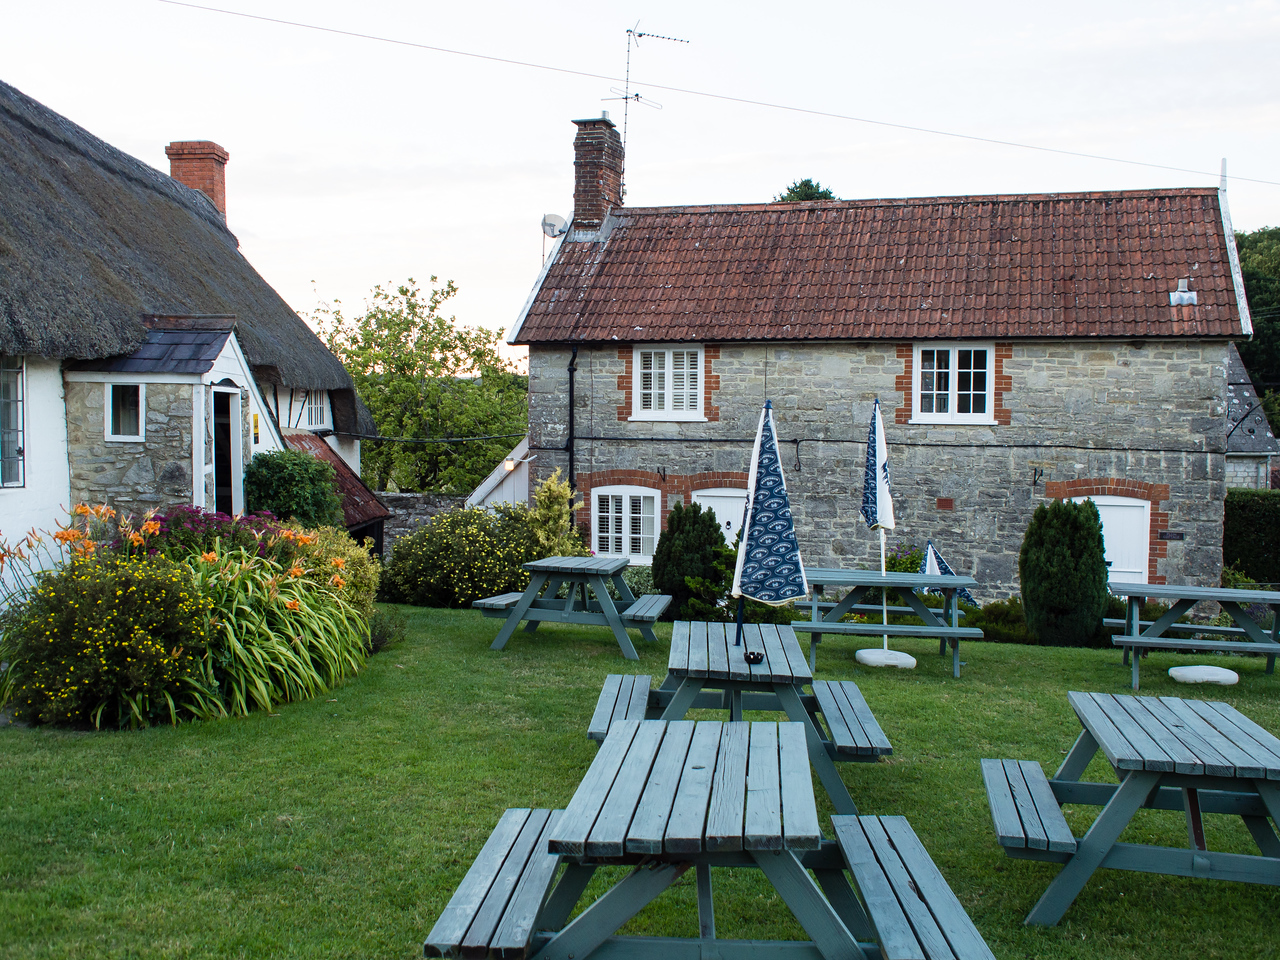 Compasses Inn for two nights